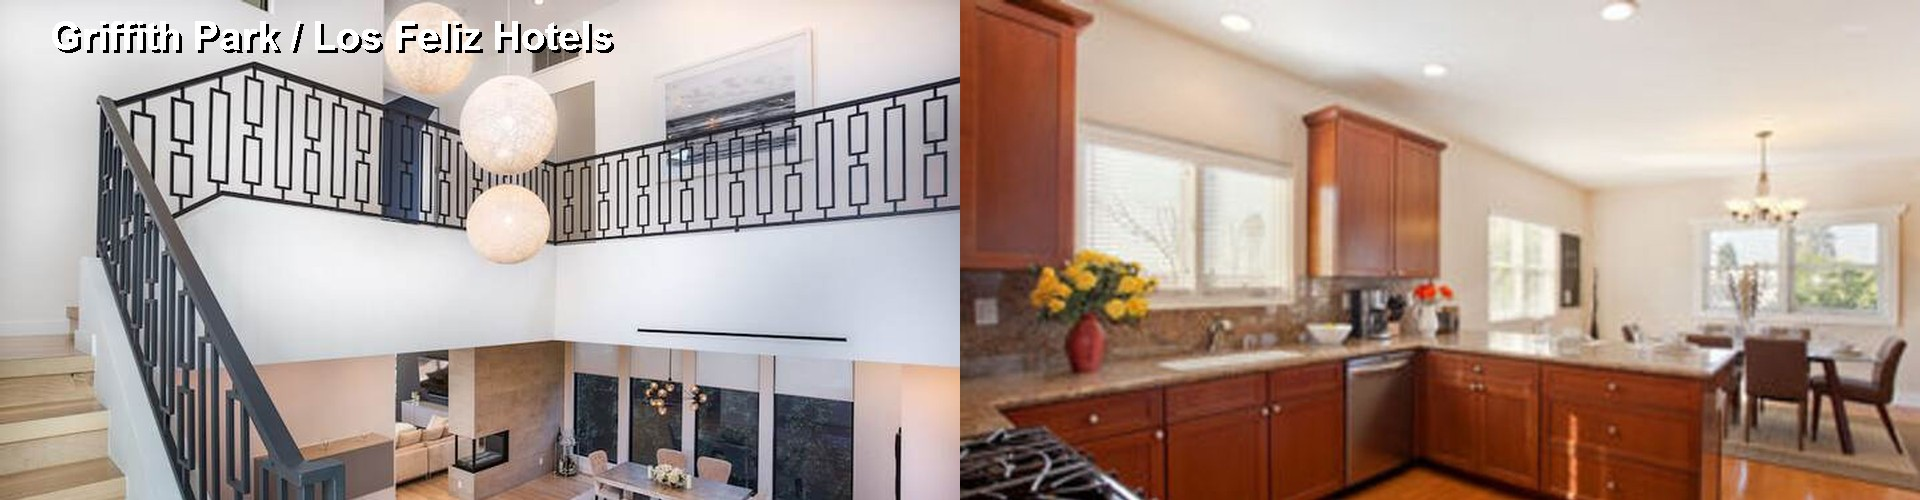 5 Best Hotels near Griffith Park / Los Feliz